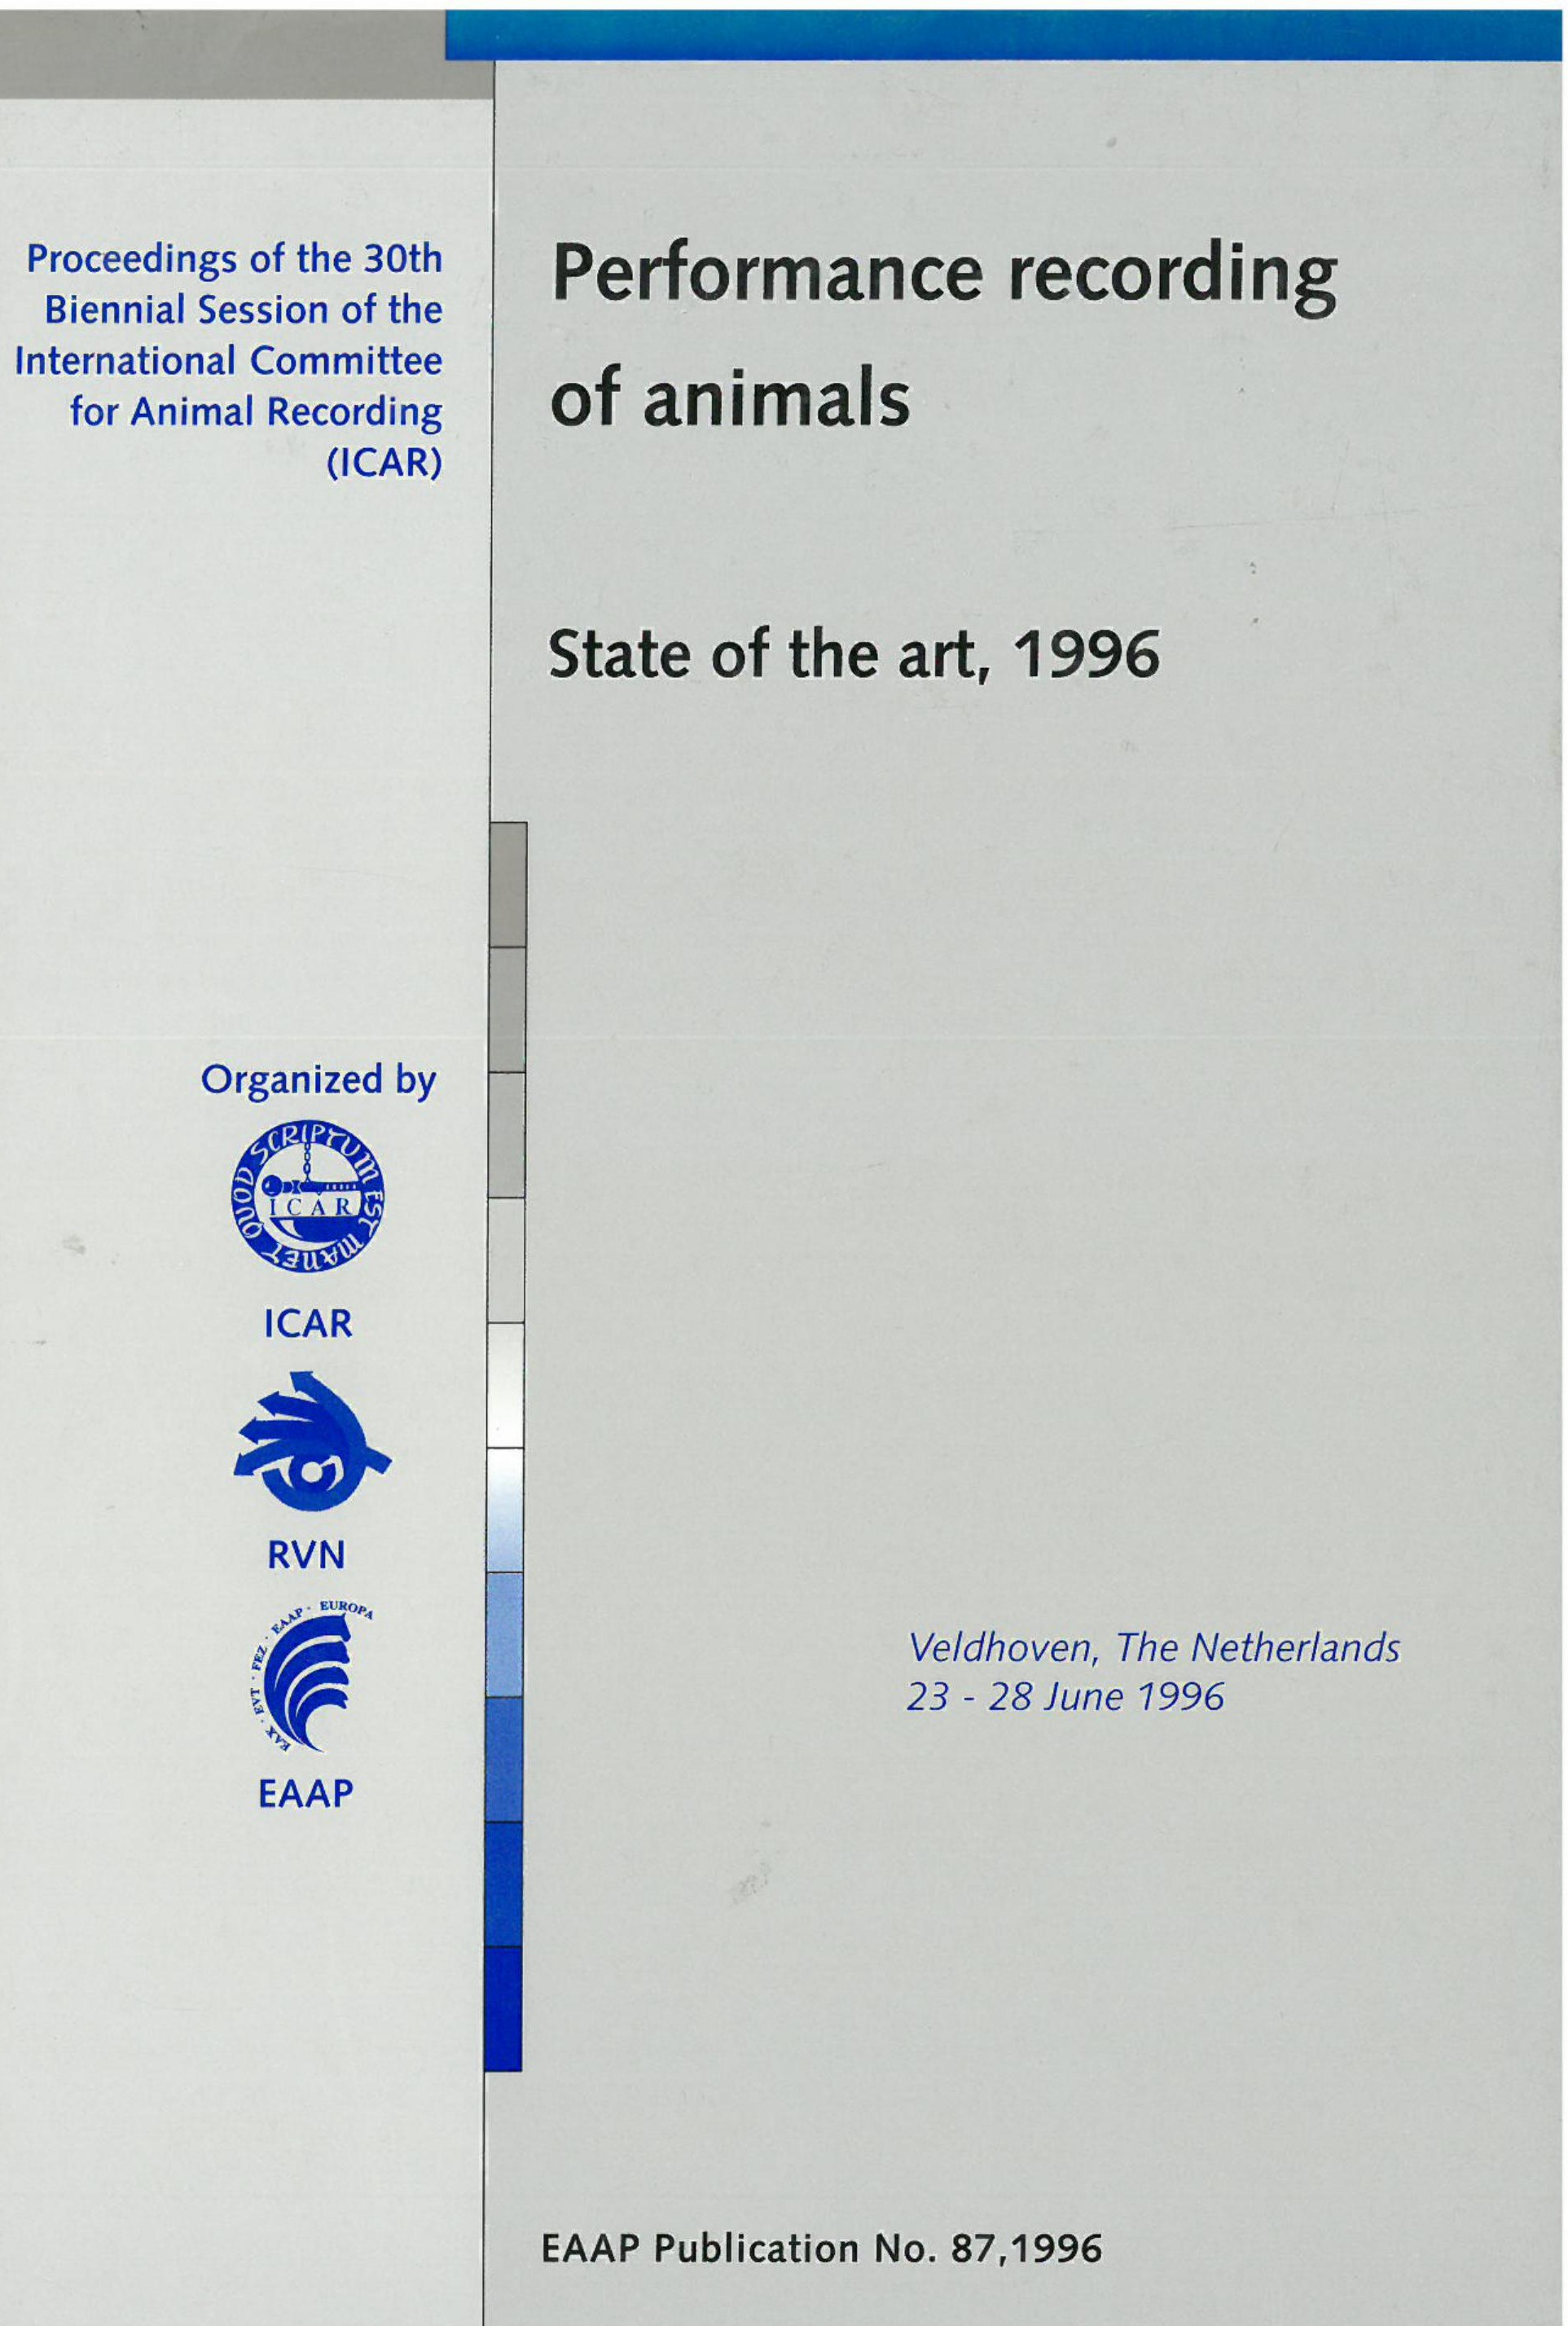 Performance recording of animals – State of the art, 1996